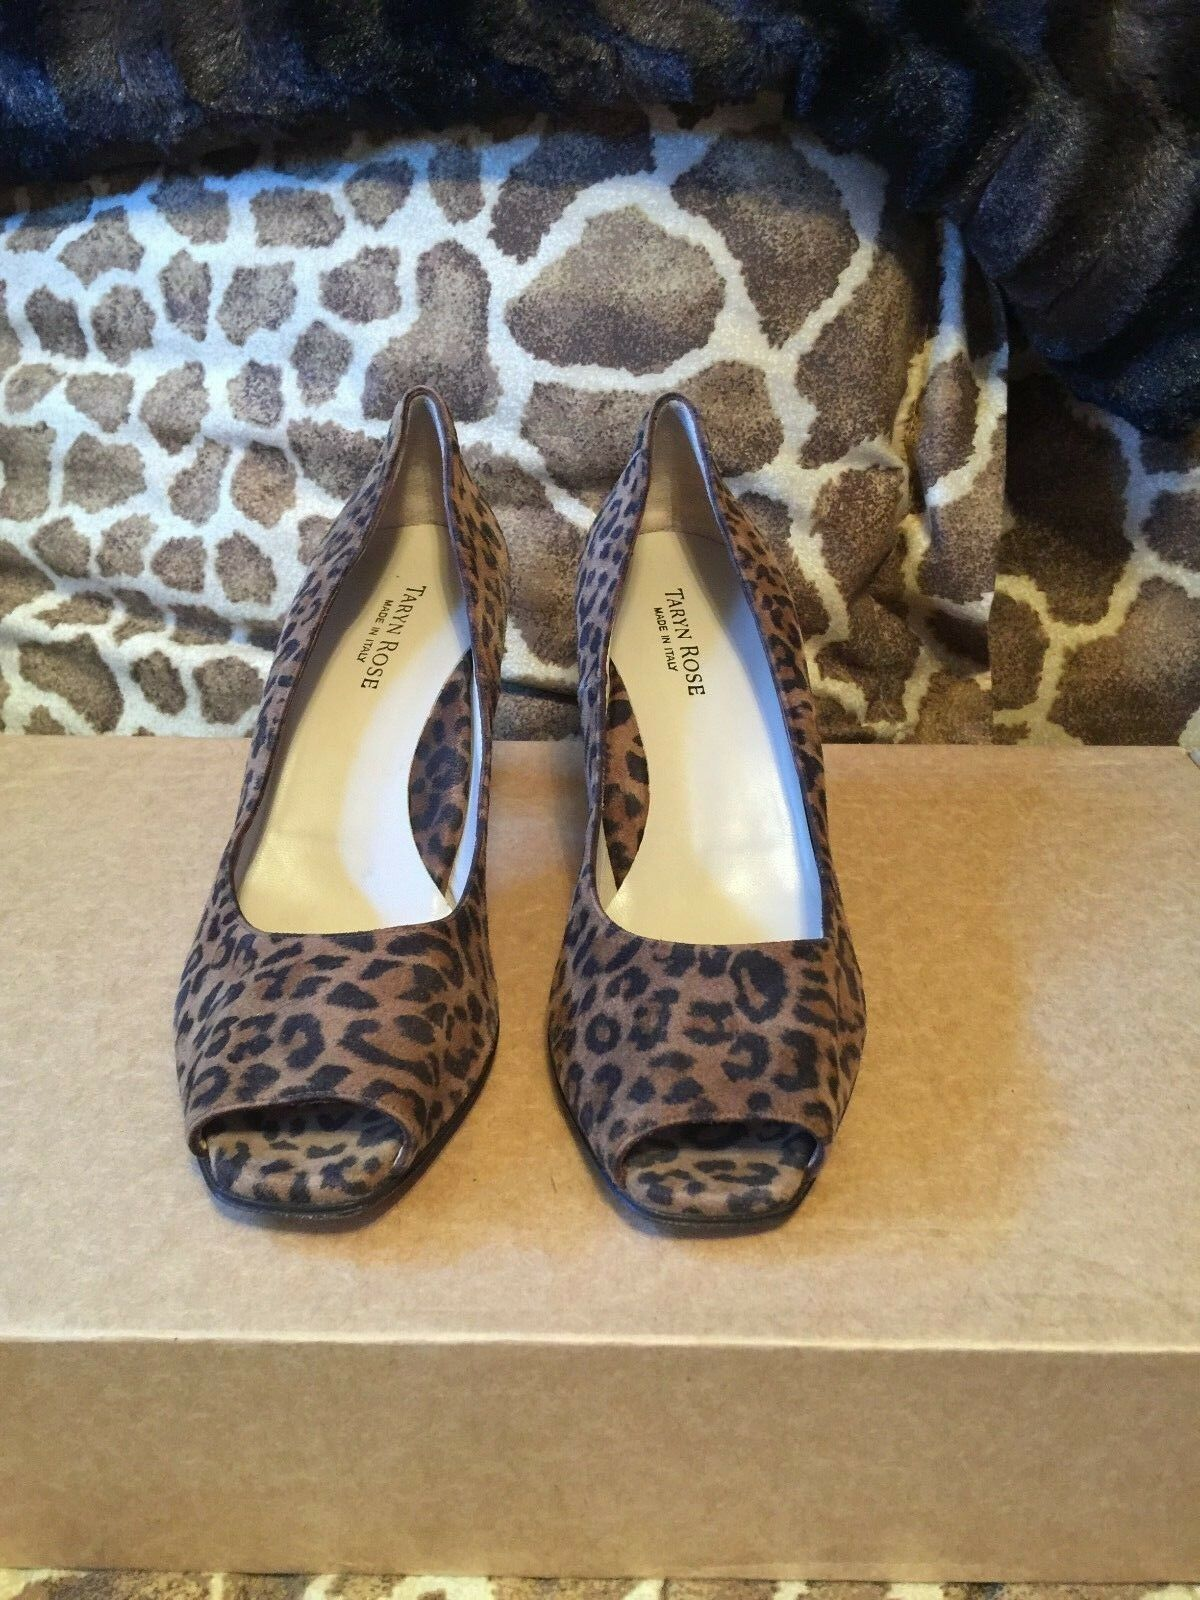 NEU TARYN ROSE Tan Animal Suede Open Toe Heels Pumps Schuhes Größe 39.5 RV 250